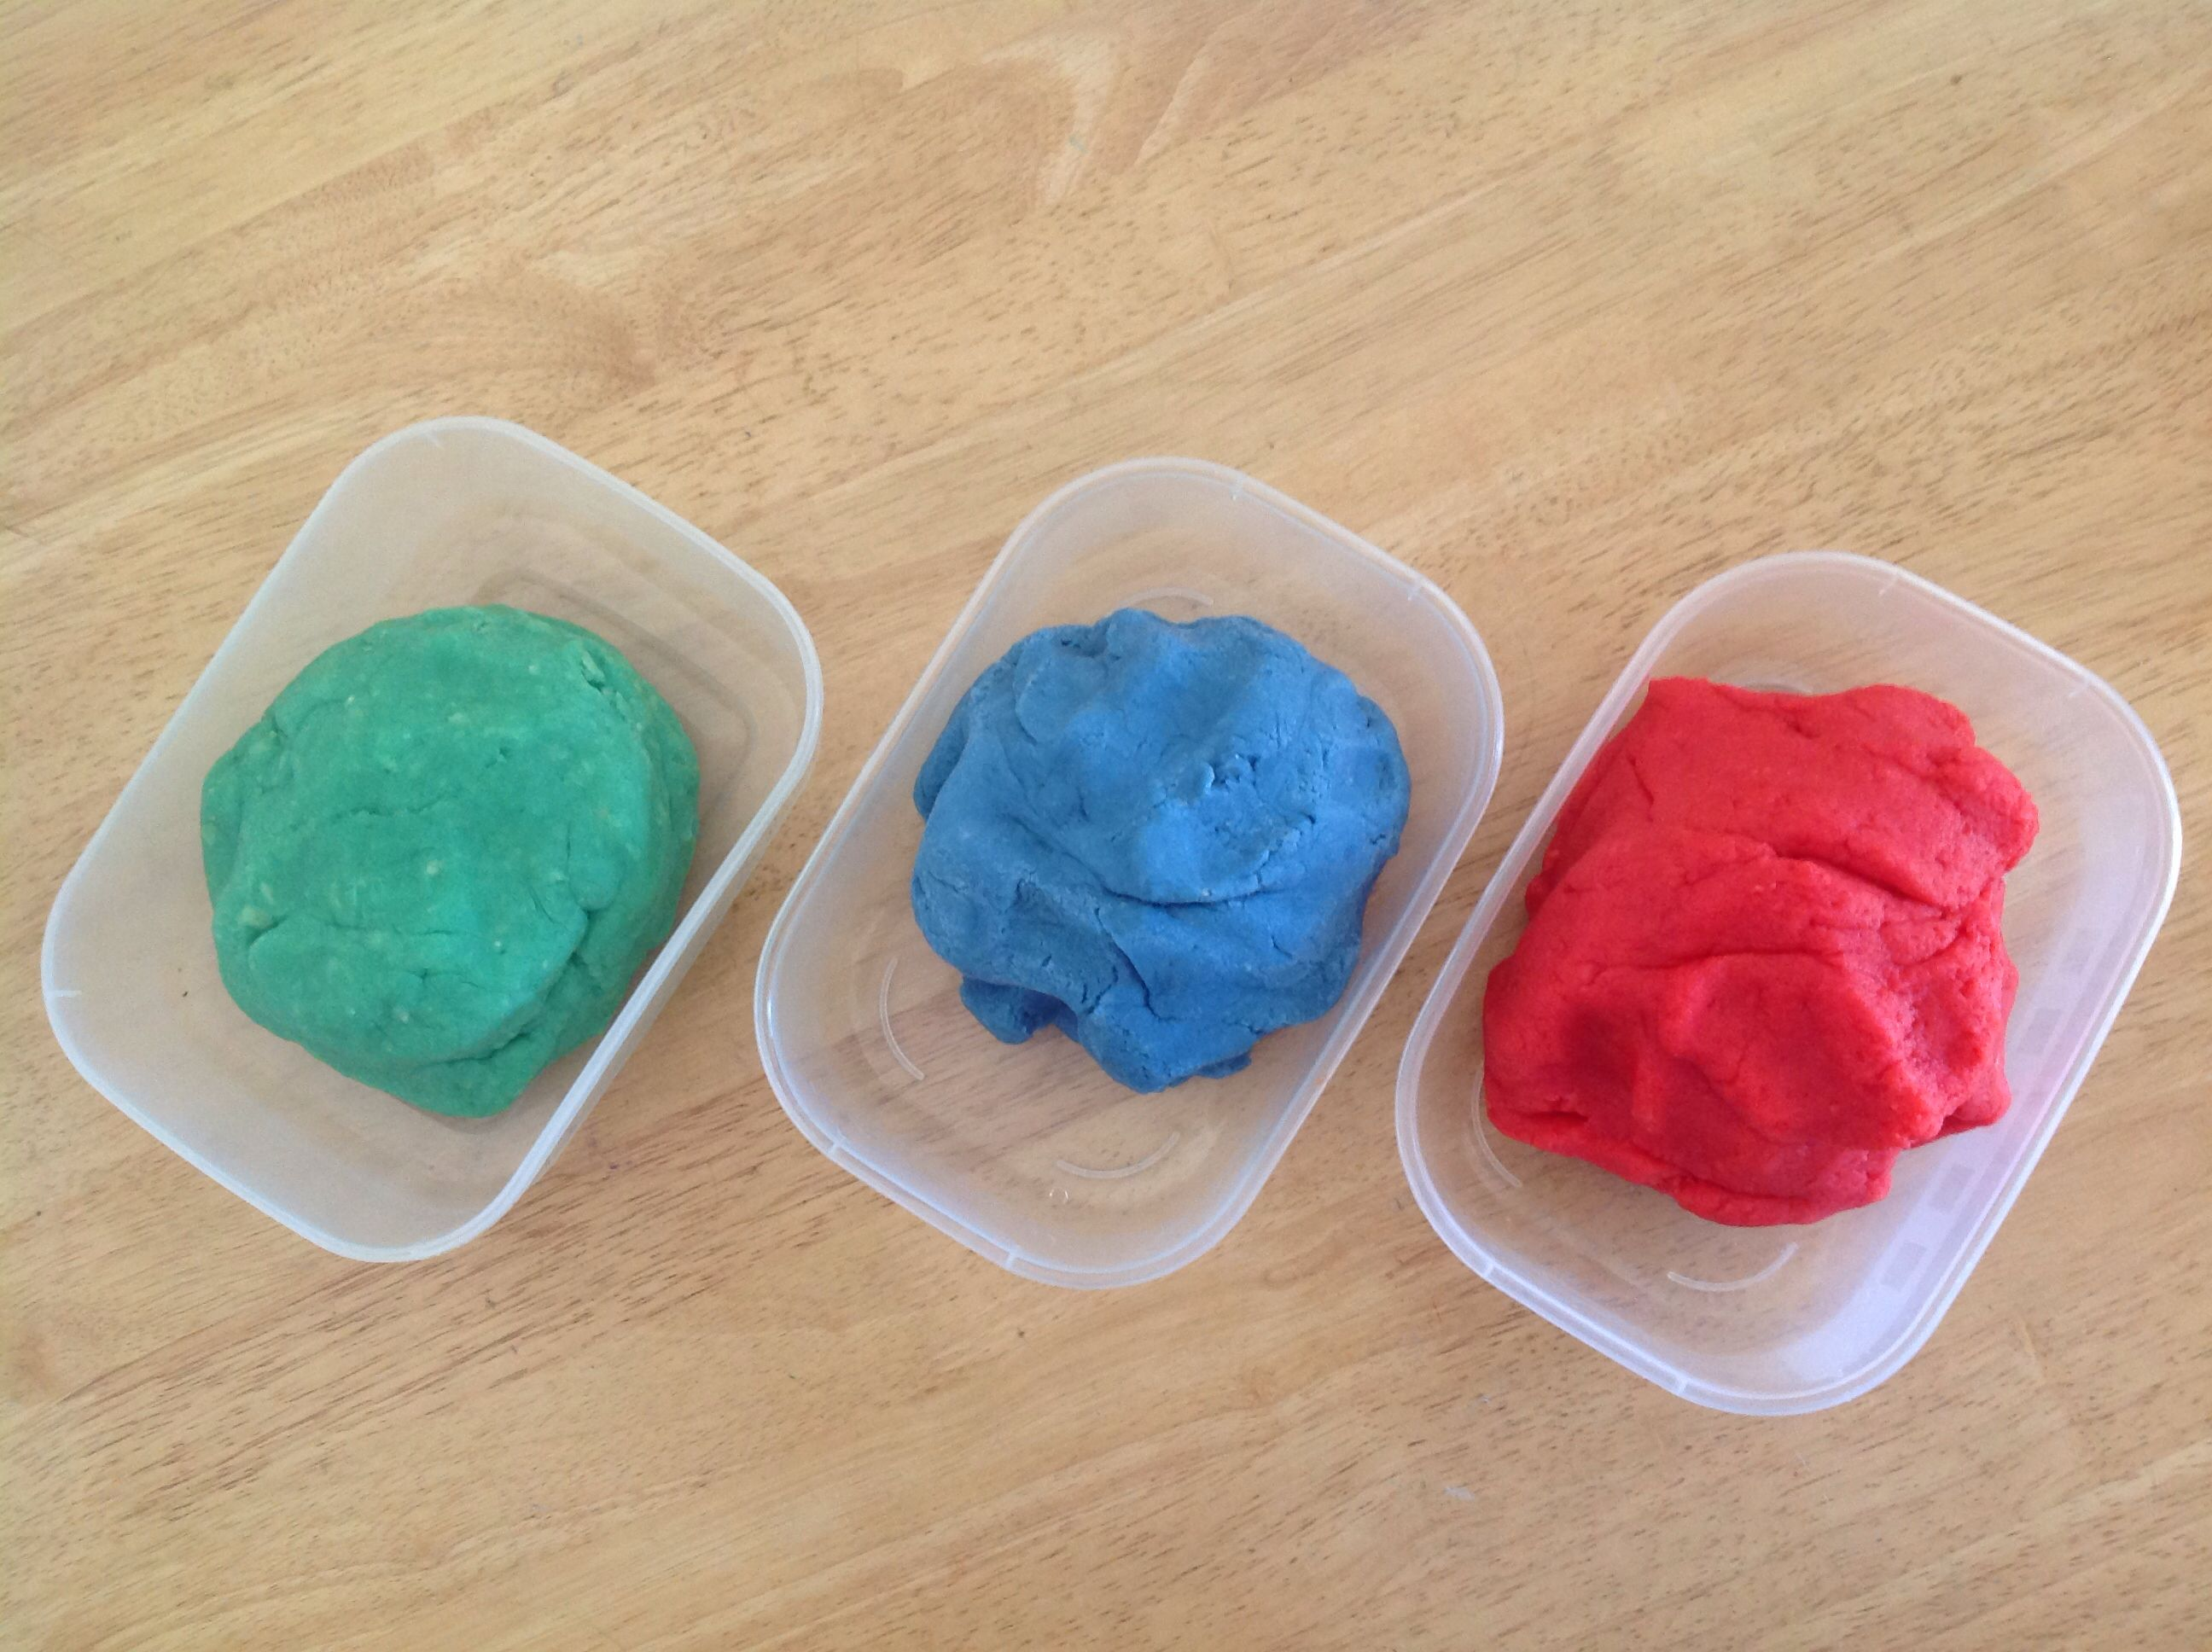 Homemade play dough. Safe for kids although advise to keep away from pets.